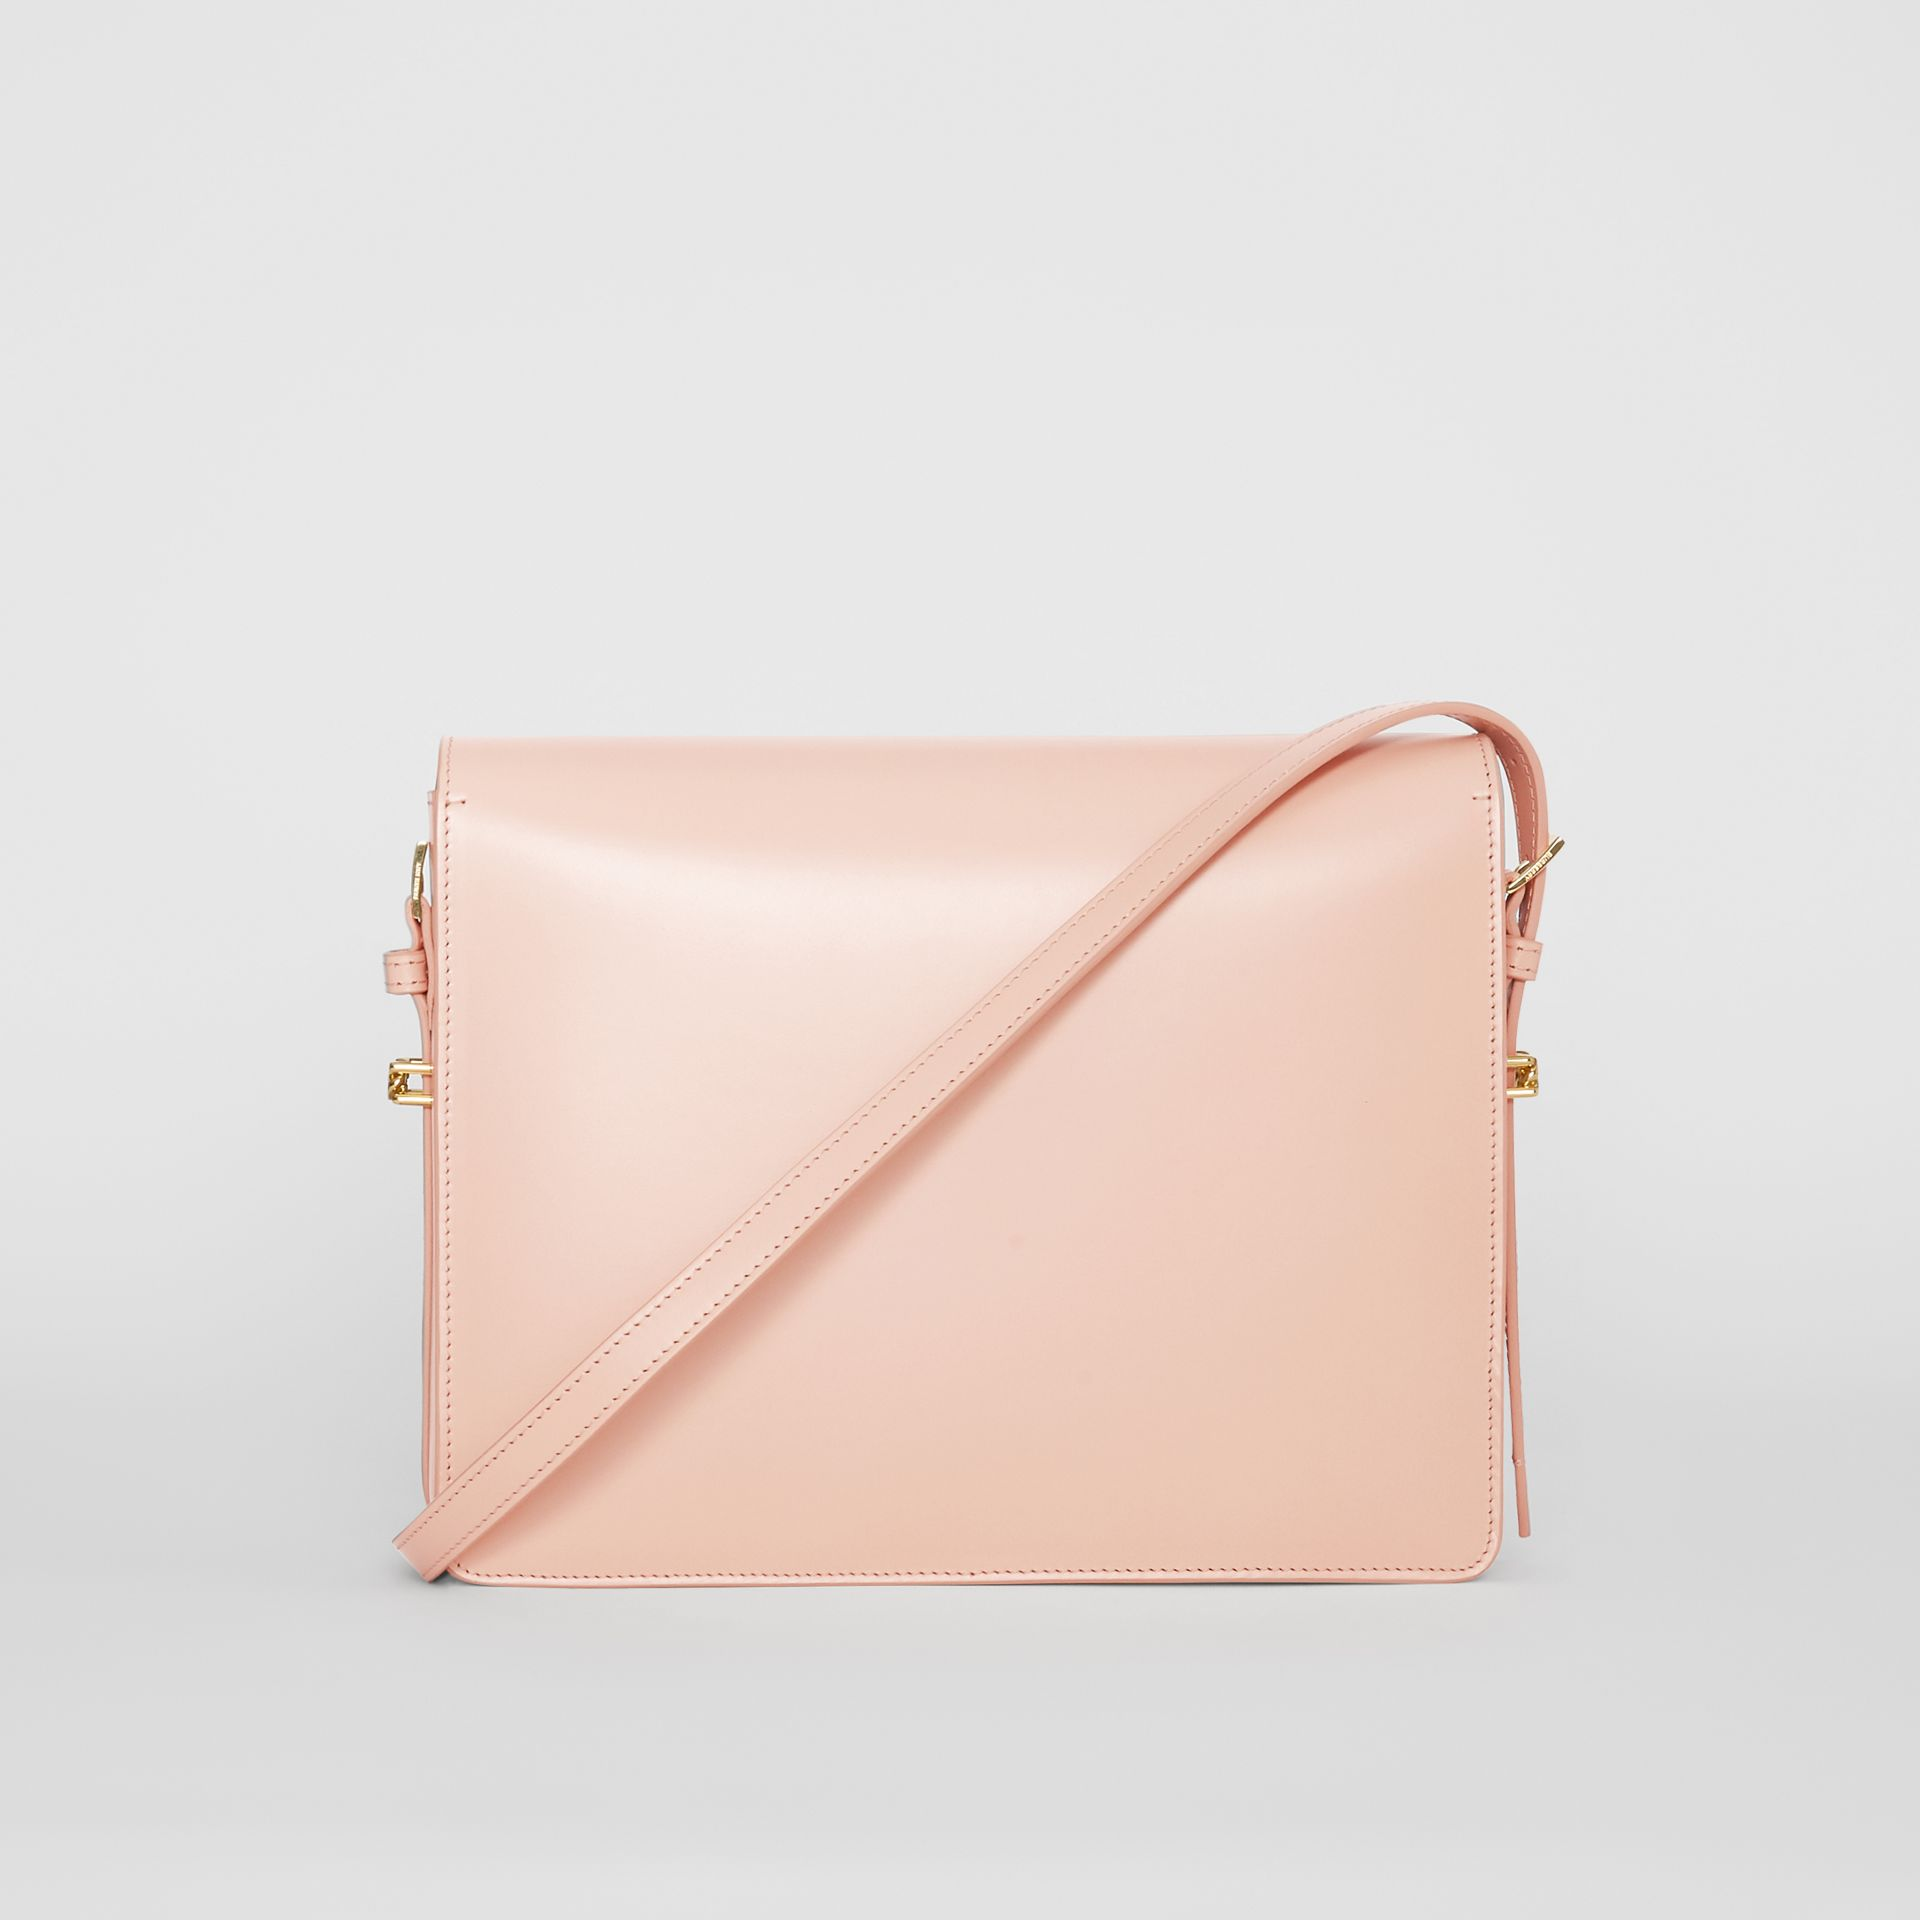 Large Leather Grace Bag in Soft Blush - Women | Burberry - gallery image 5